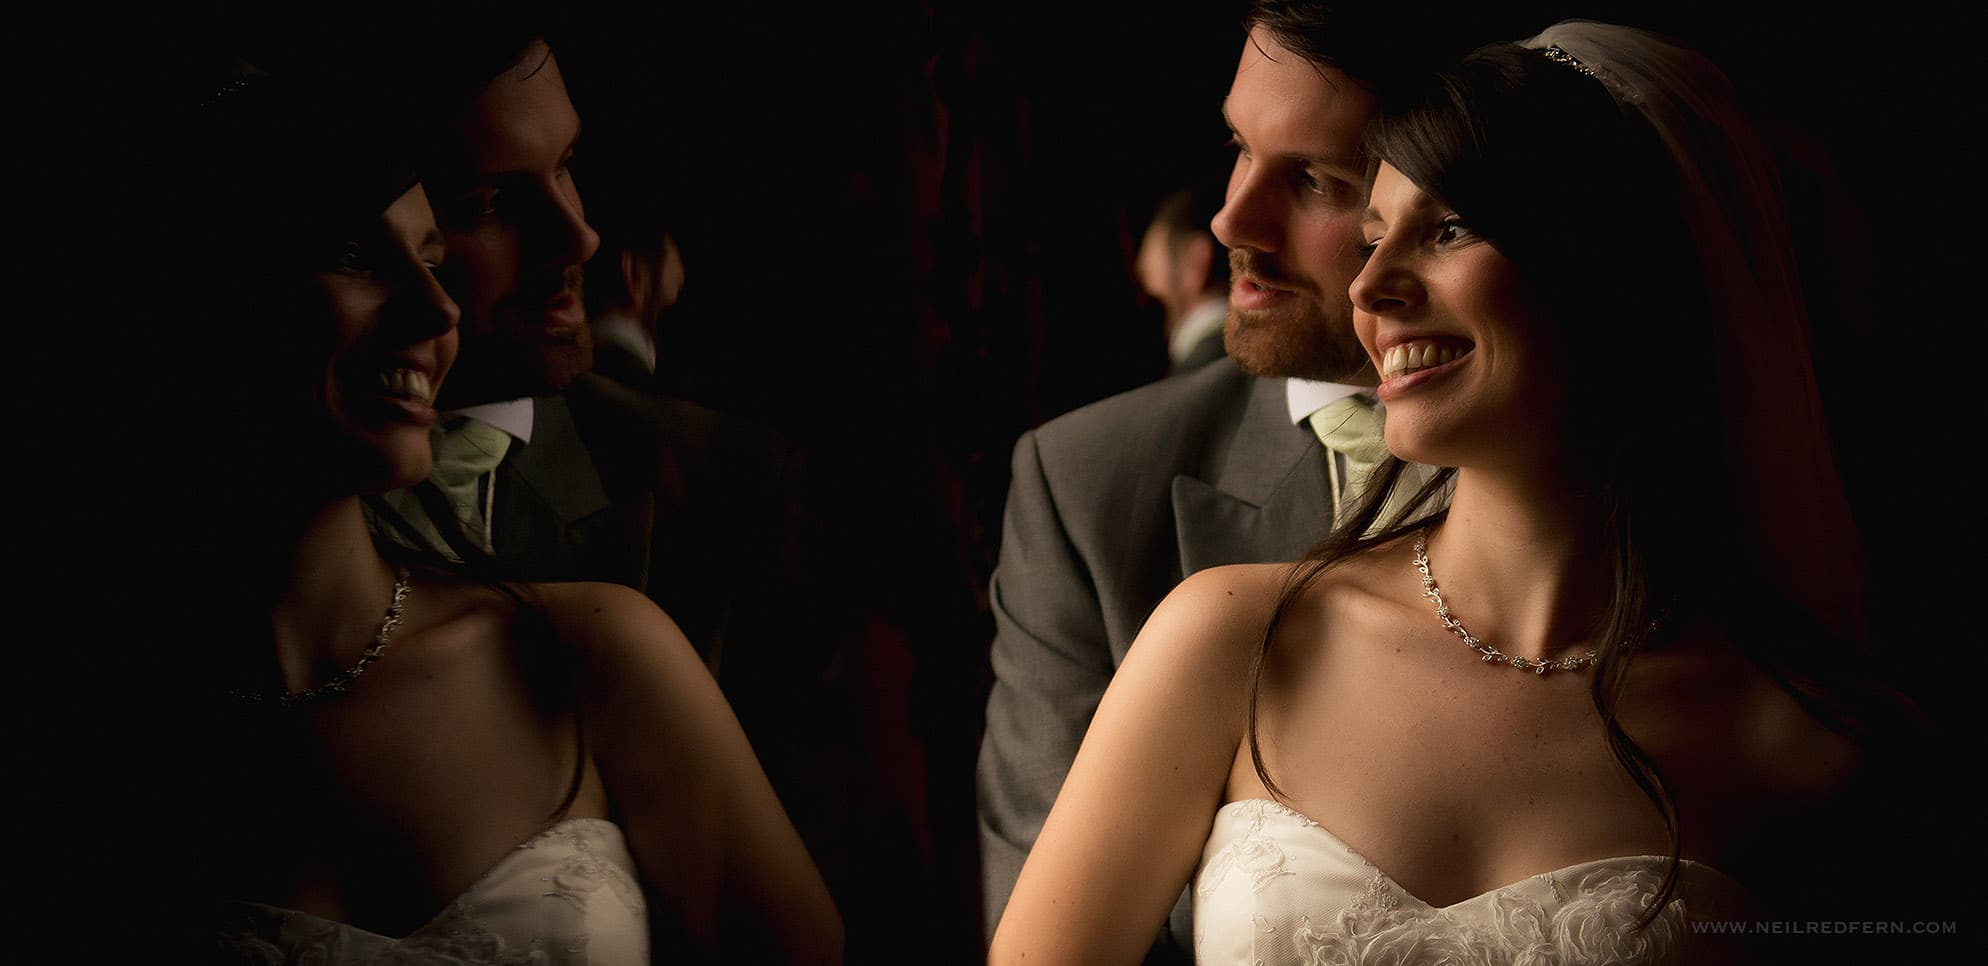 Photograph from wedding at Eaves Hall